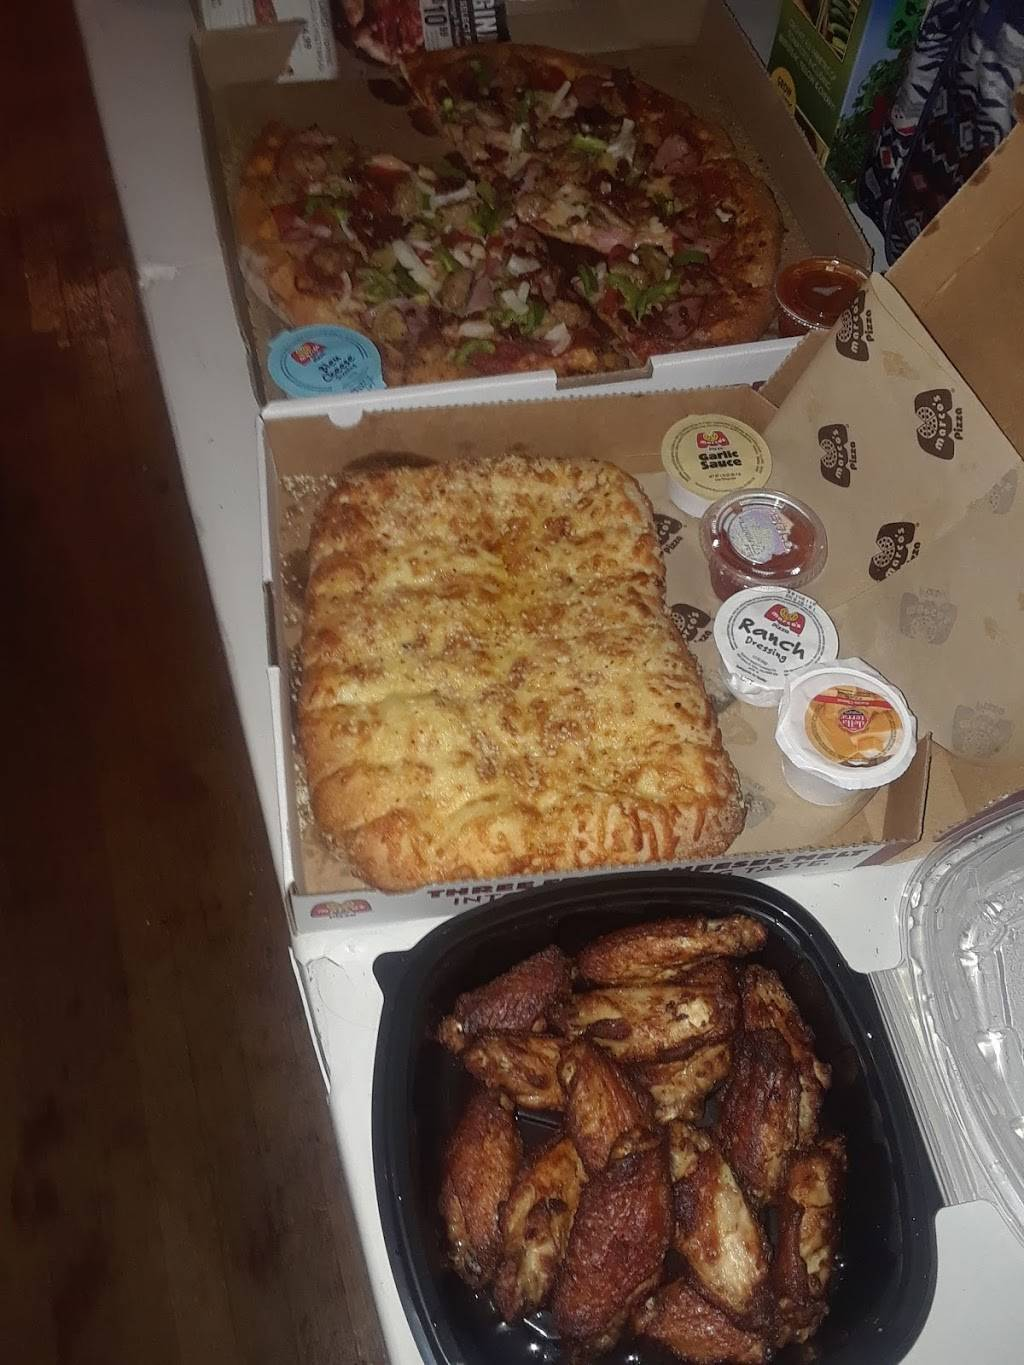 Marcos Pizza | meal delivery | 615 S Scatterfield Rd, Anderson, IN 46012, USA | 7656435900 OR +1 765-643-5900